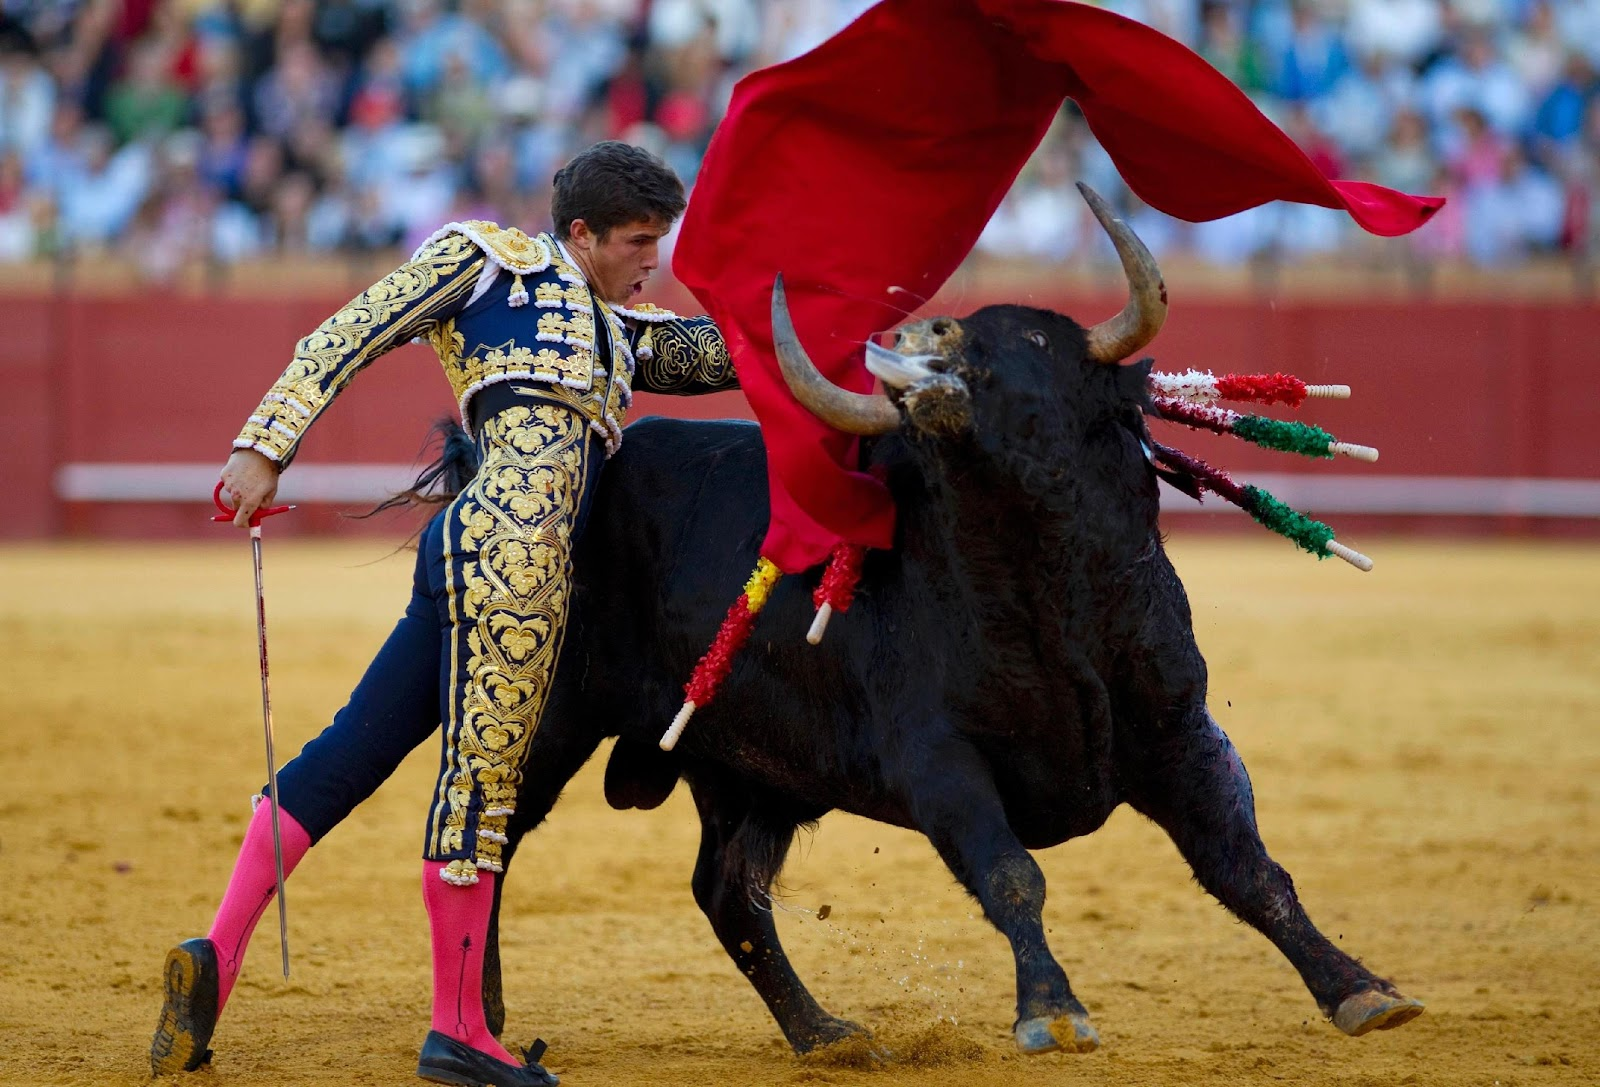 C:\Users\rwil313\Desktop\Bullfighting picture.jpg